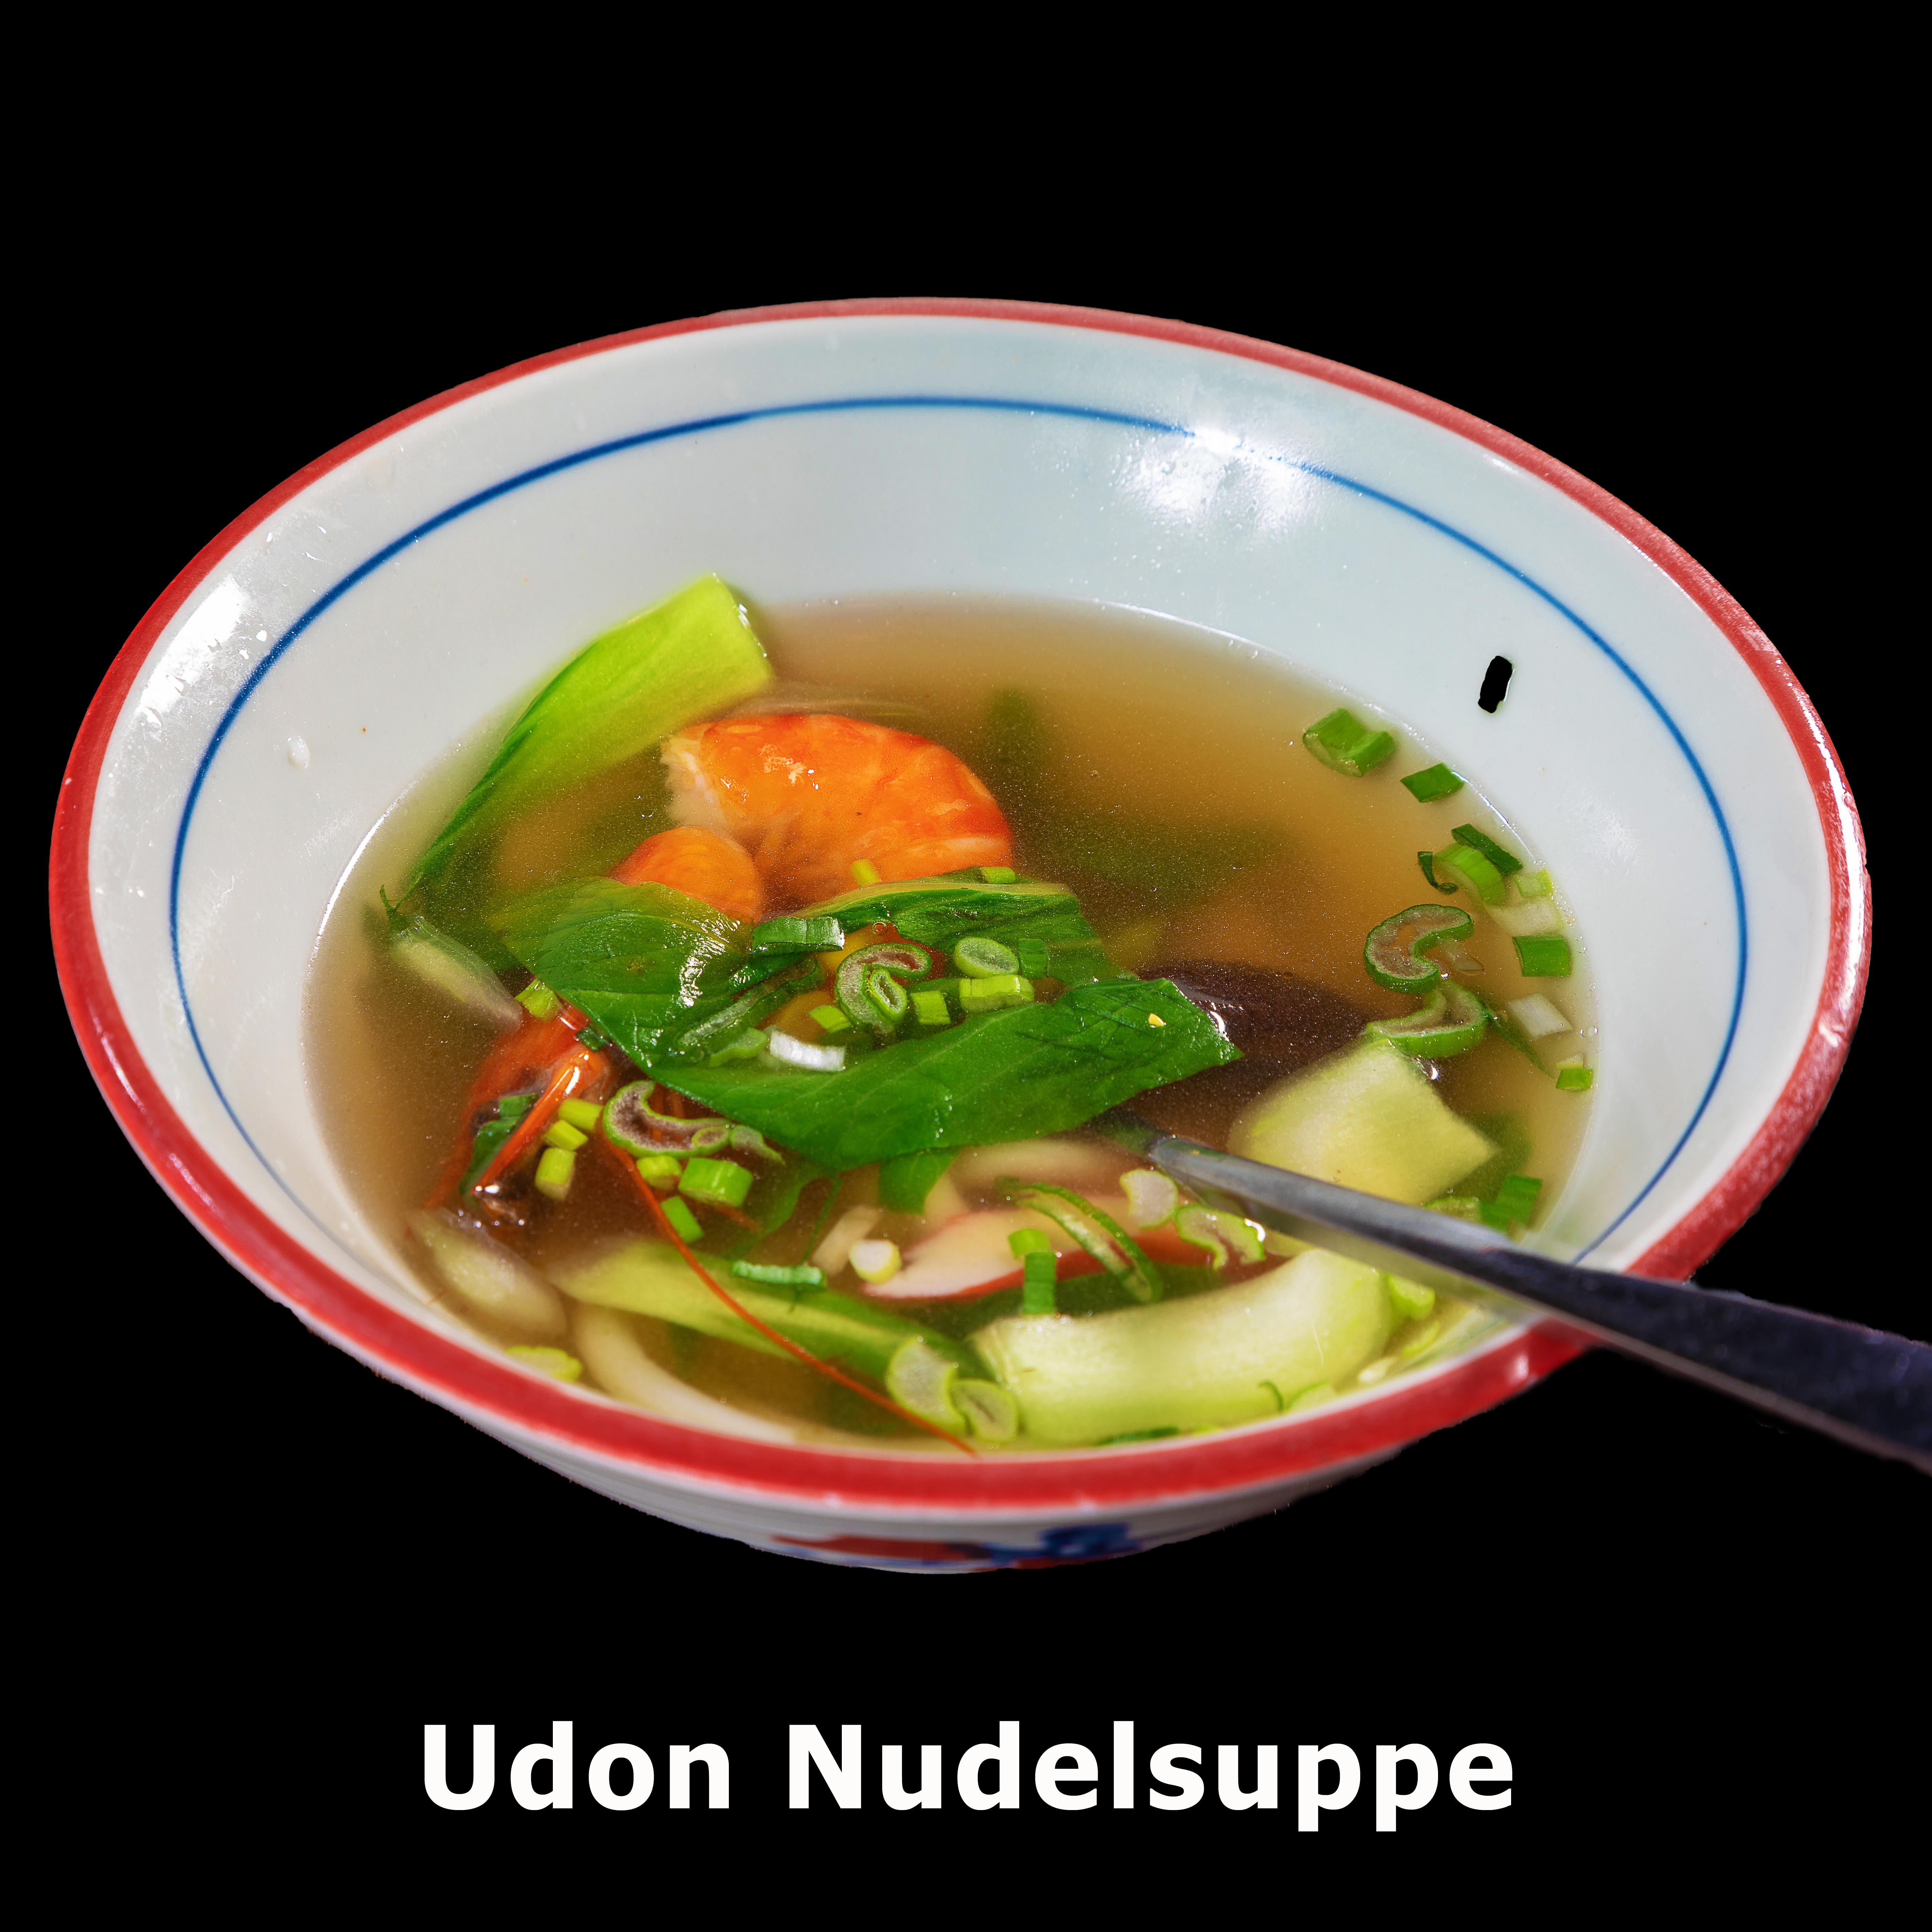 3. Udon Nudelsuppe